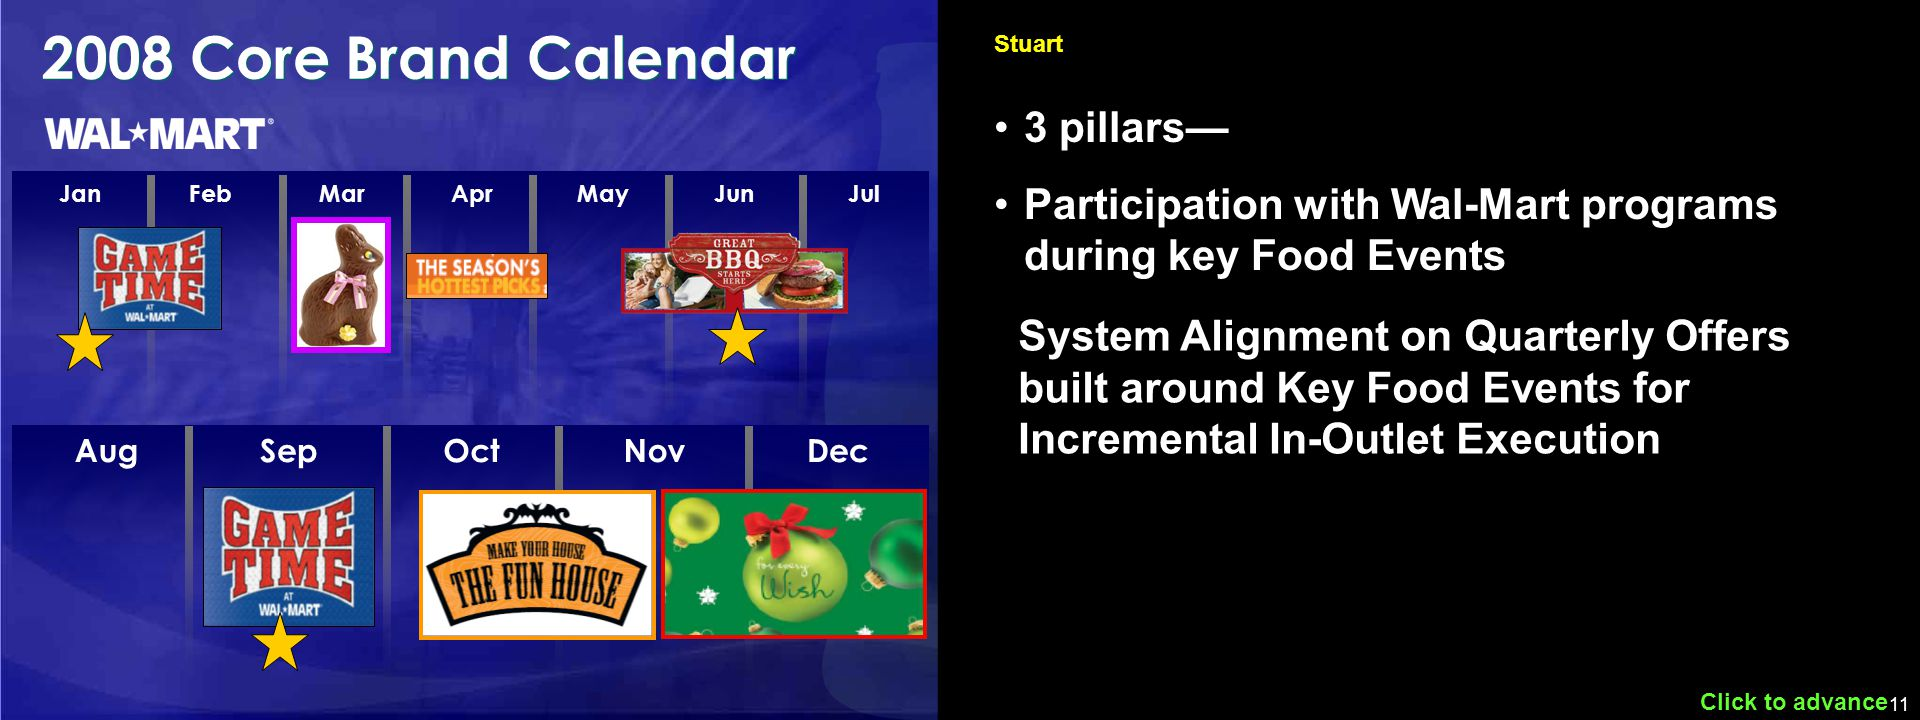 11 JanFebMarAprMayJunJul 2008 Core Brand Calendar Click to advance Stuart 3 pillars— Participation with Wal-Mart programs during key Food Events System Alignment on Quarterly Offers built around Key Food Events for Incremental In-Outlet Execution AugSepOctNovDec